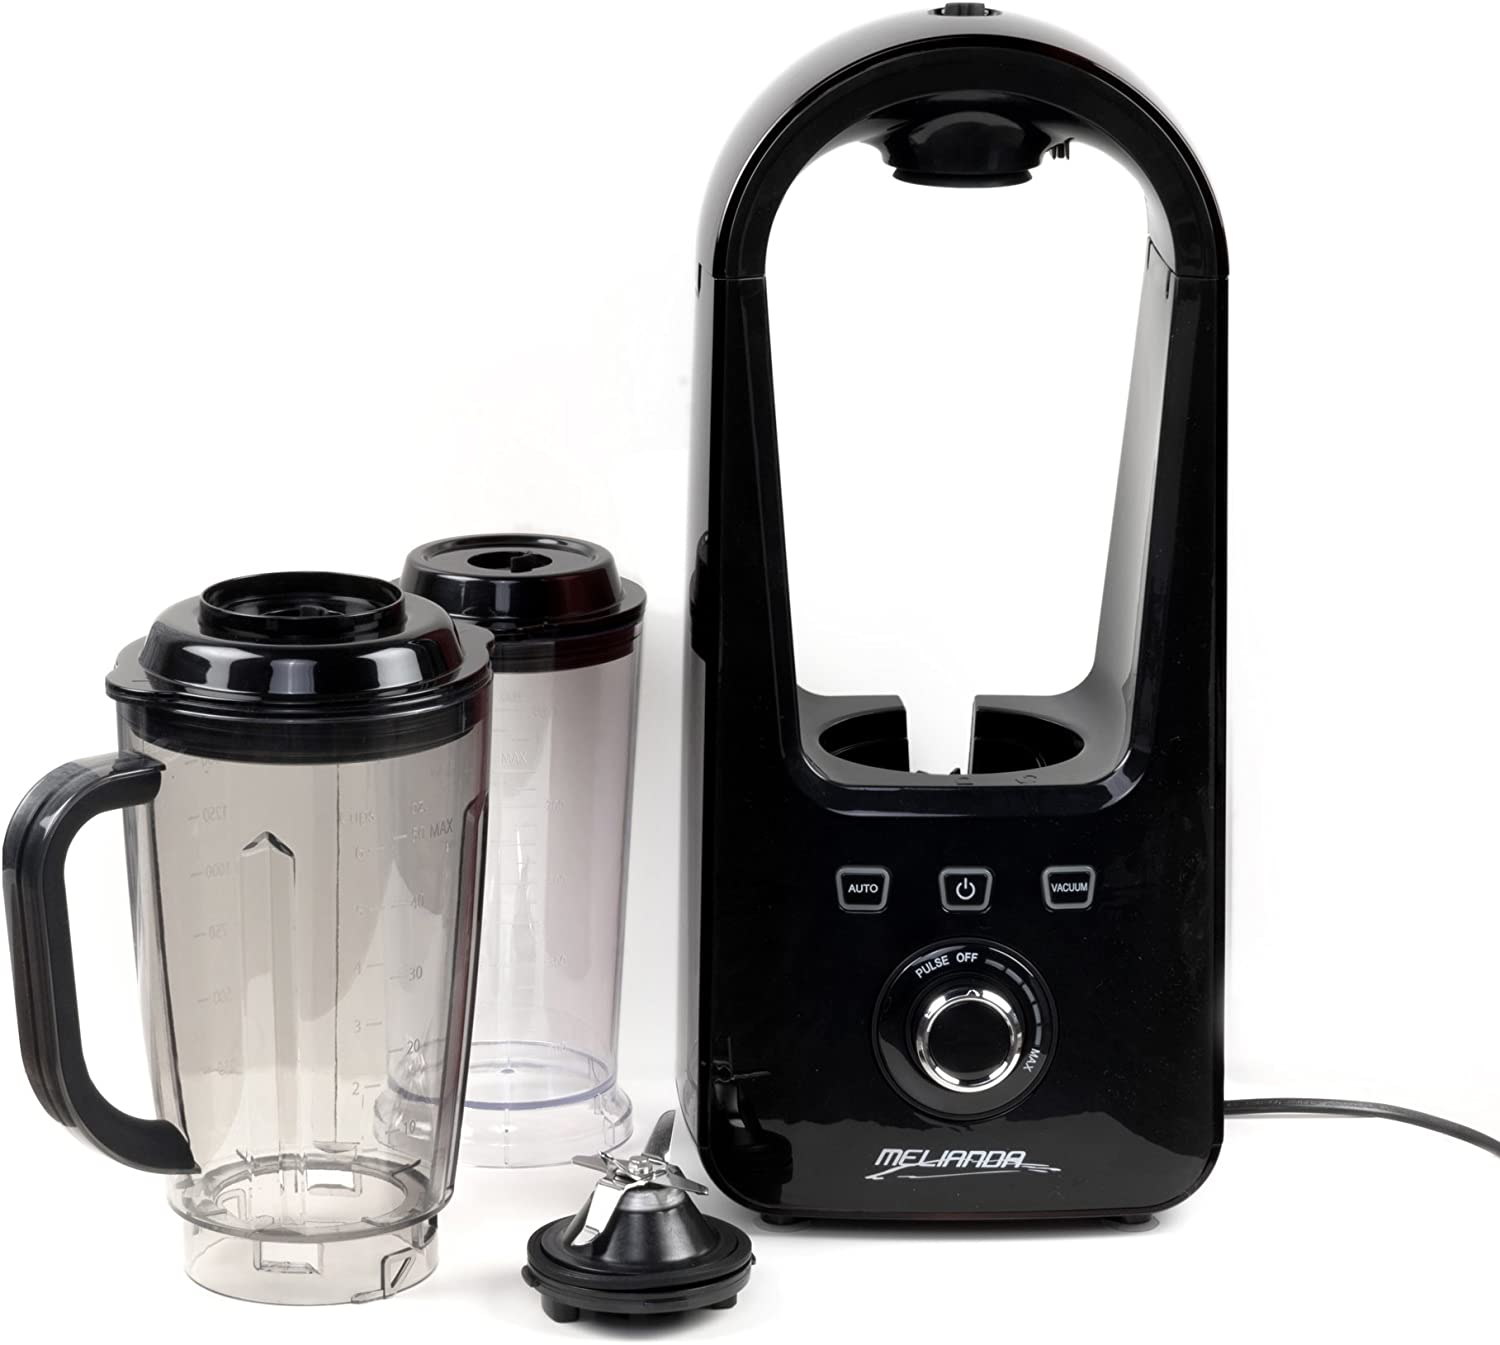 MELIANDA MA-18200 Vacuum Stand Mixer Smoothiemaker 800 W 1.5 Litres 6 Stainless Steel Blades Black